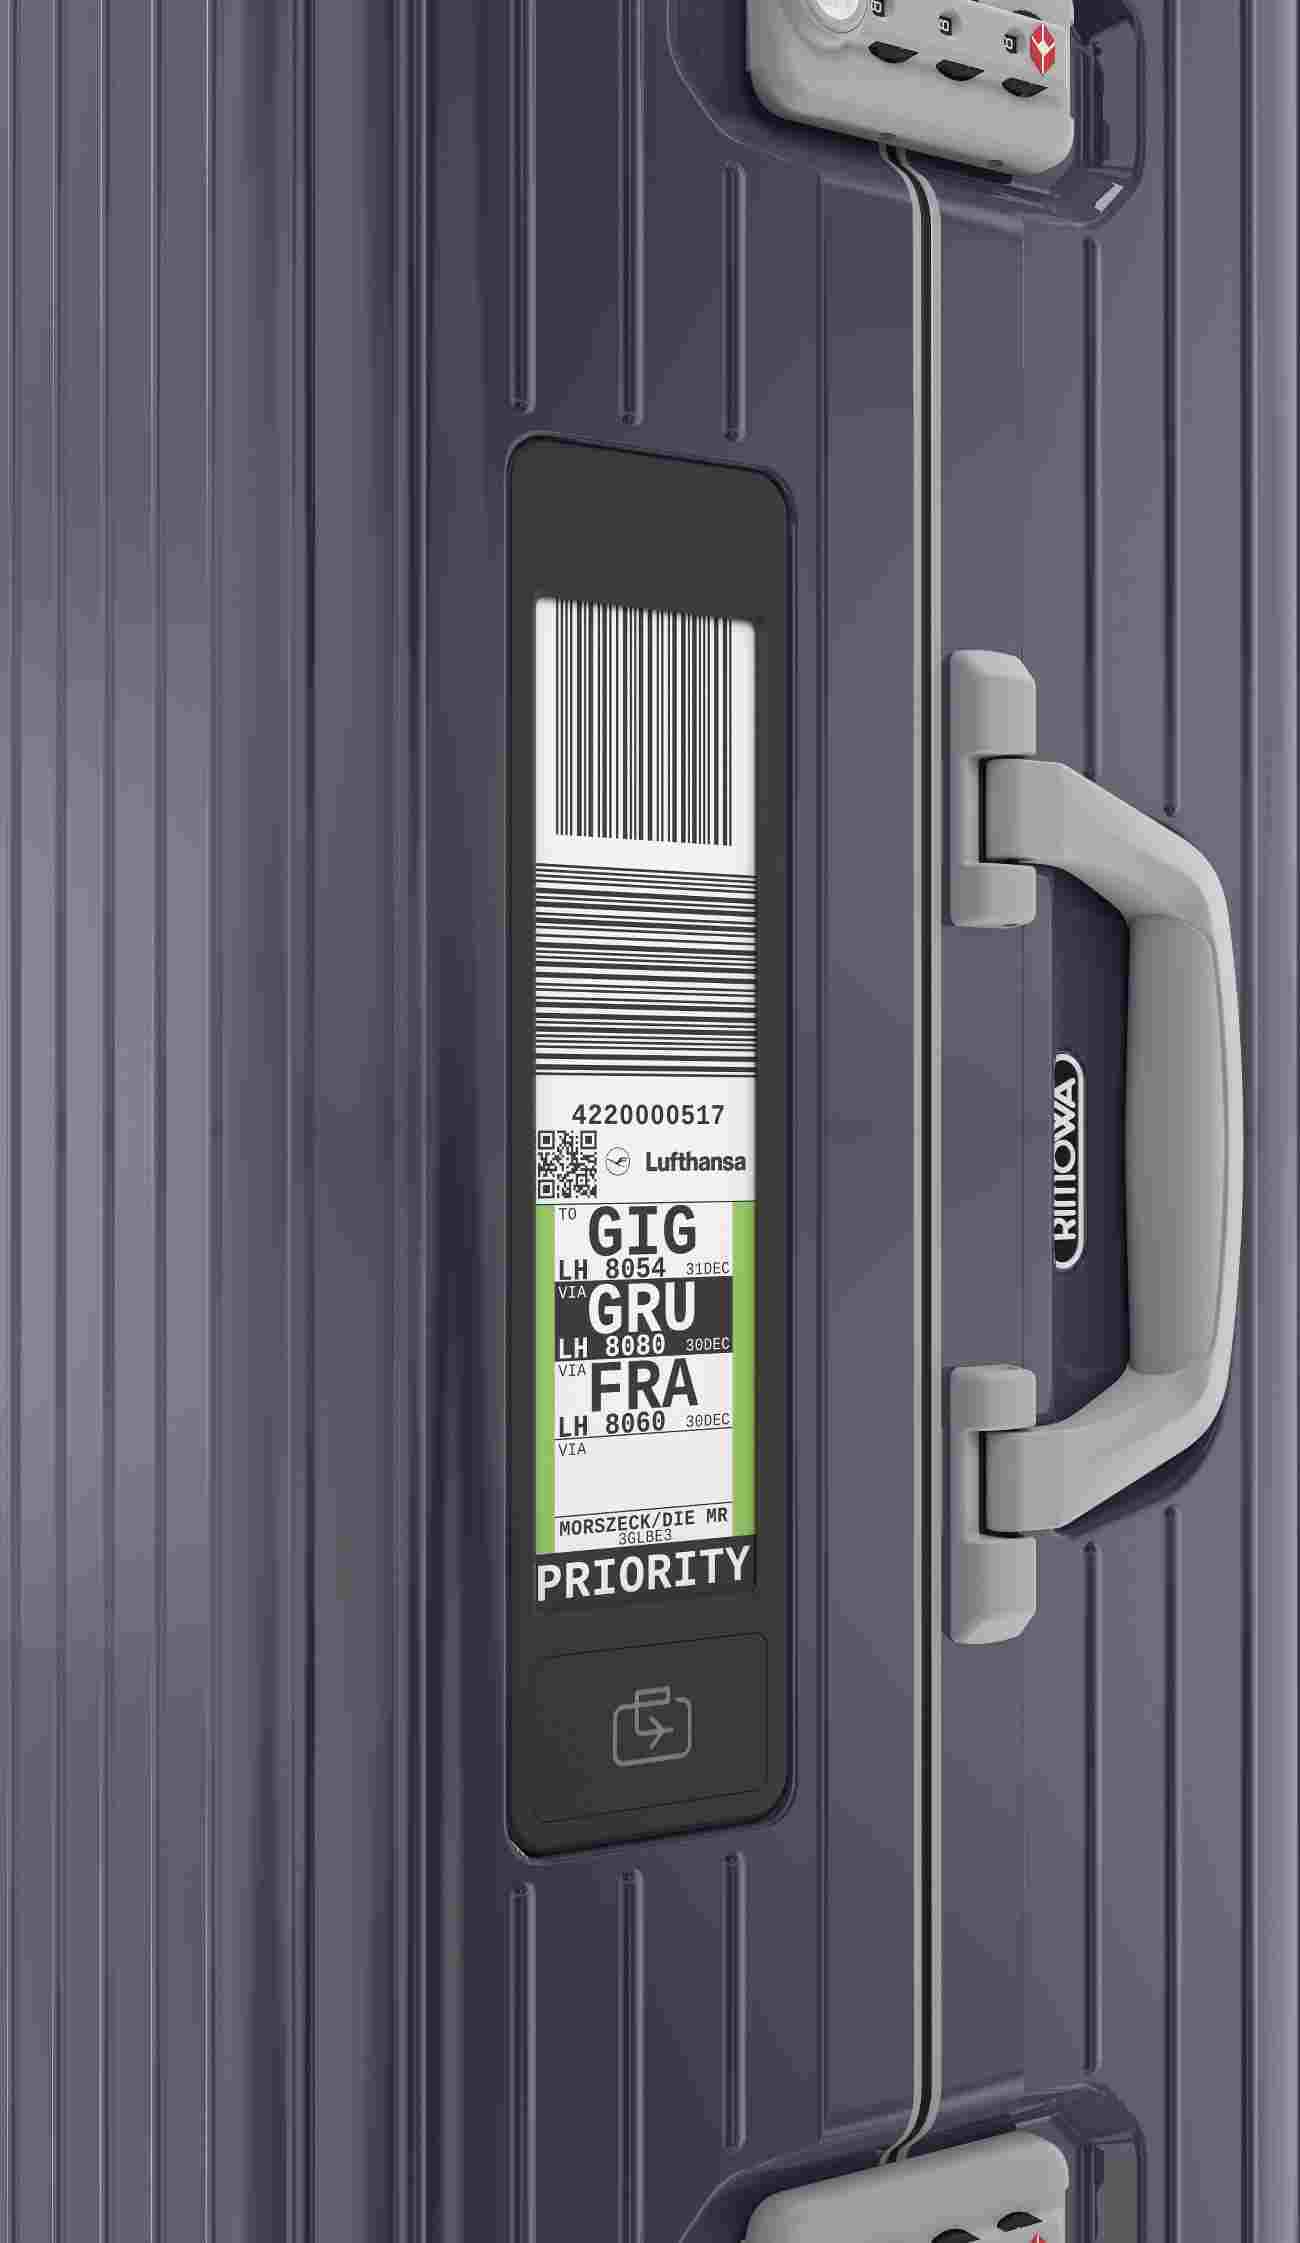 Rimova Electronic Tag-compressed